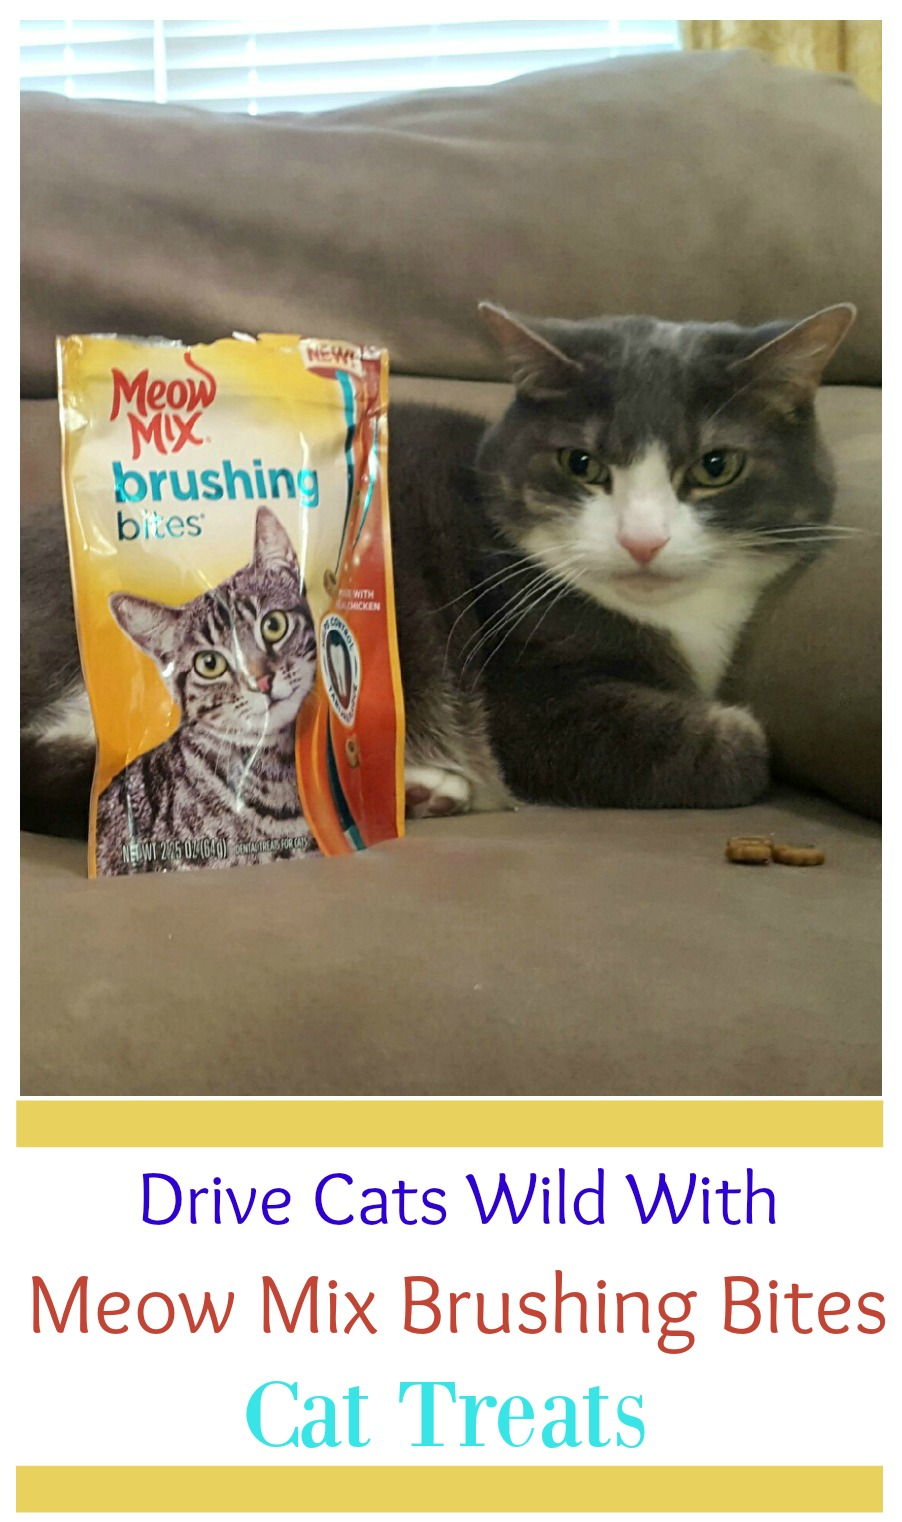 Drive Cats Wild with Meow Mix Brushing Bites Cat Treats